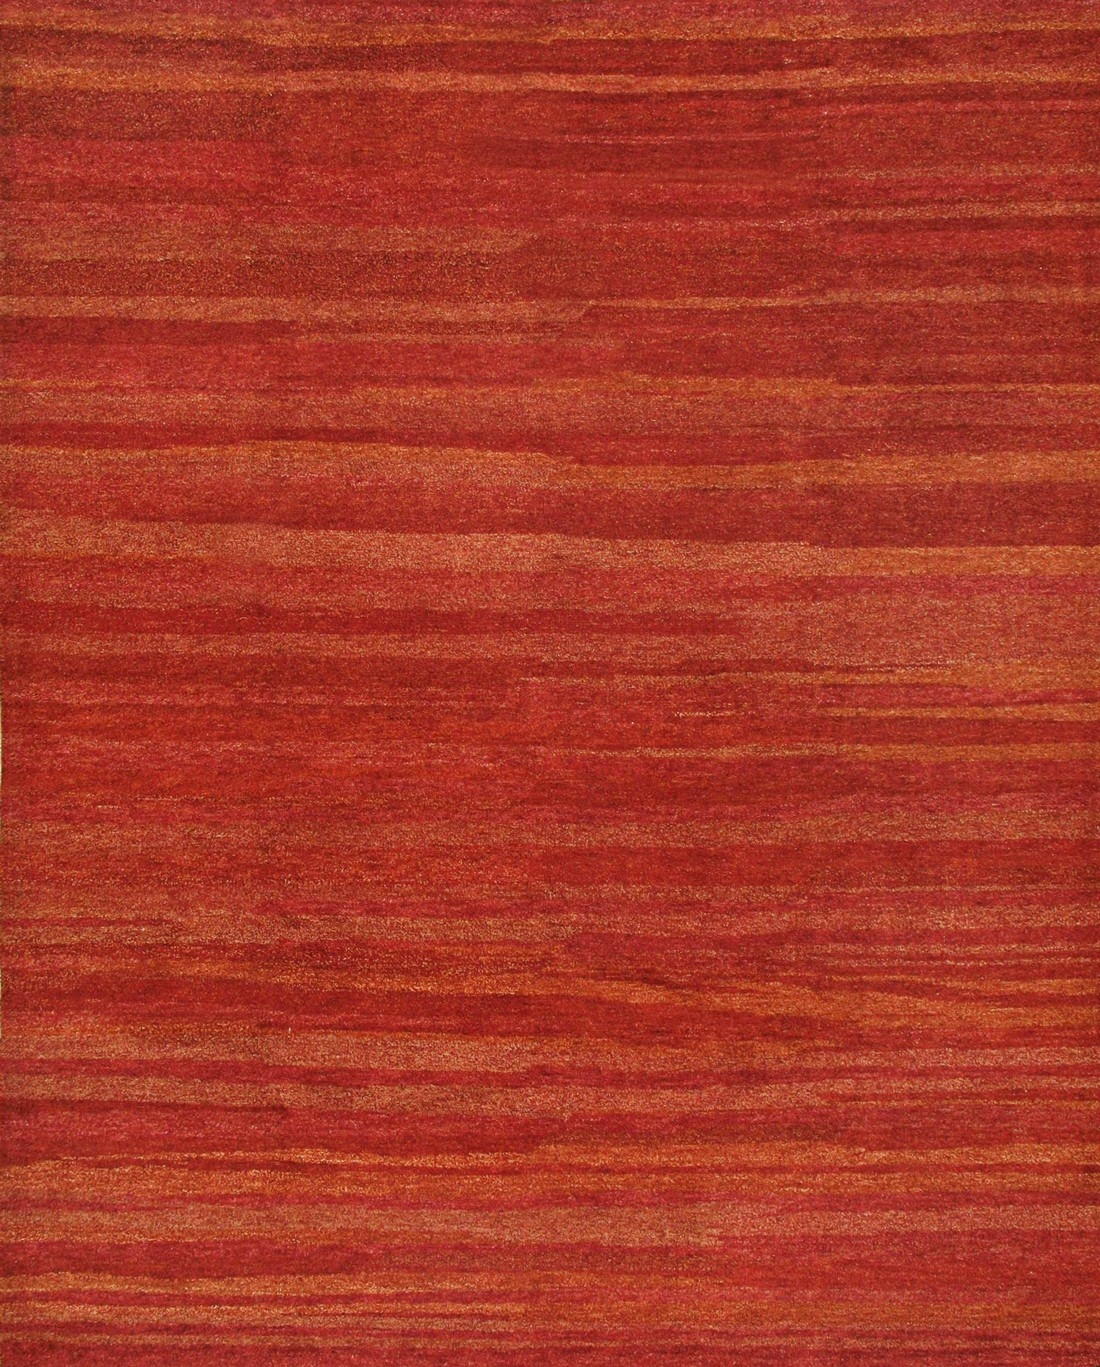 Red Wool Rugs Uk Roselawnlutheran With Regard To Red Wool Rugs (View 12 of 15)